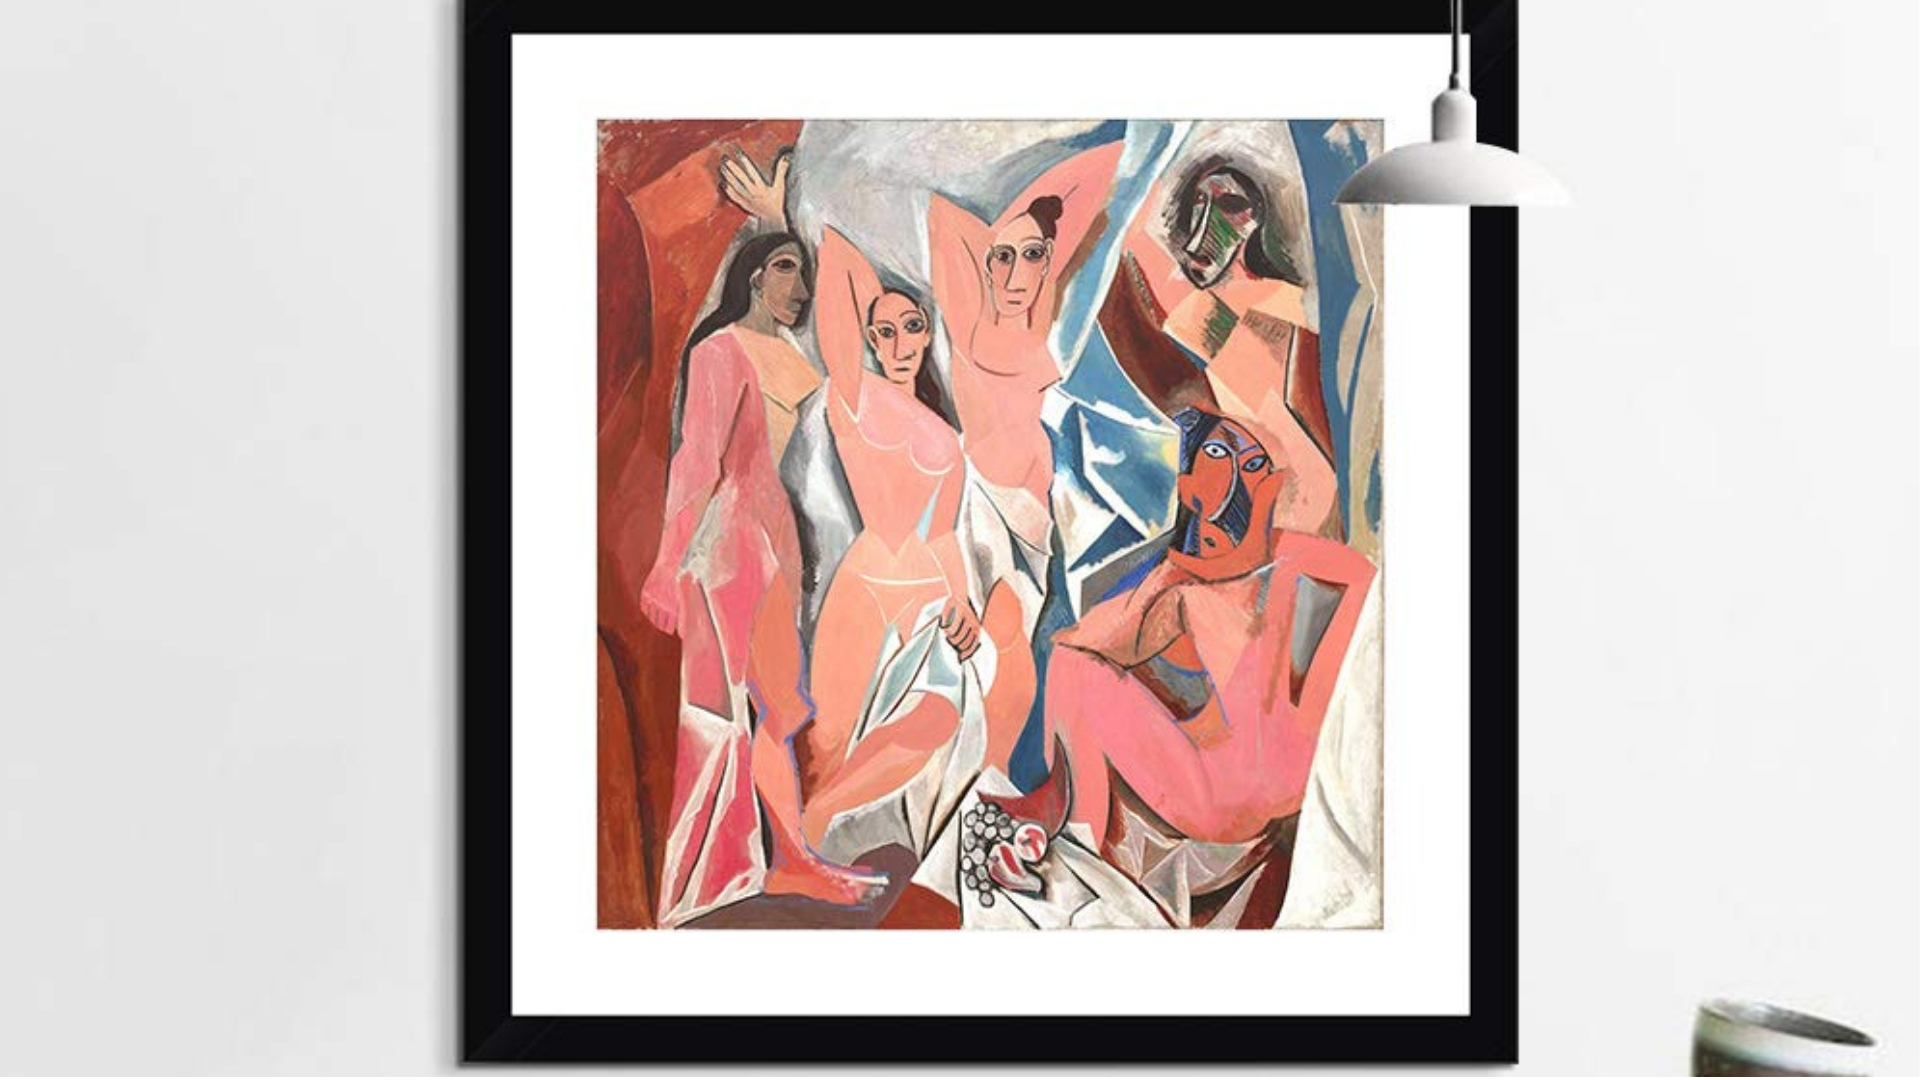 Les Demoiselles d'Avignon  Paris, June-July 1907, Source:  MOMA  |This painting marks Picasso's radical break from traditional composition and has become one of the most famous examples of cubism painting. Picasso abandoned all known form and representation of traditional art when he used distortion of a female's body and geometric forms in an innovative way, which at the time challenged the expectation that paintings will offer idealized representations of female beauty. It is also significant as it pays homage to the influence African art had on Picasso.